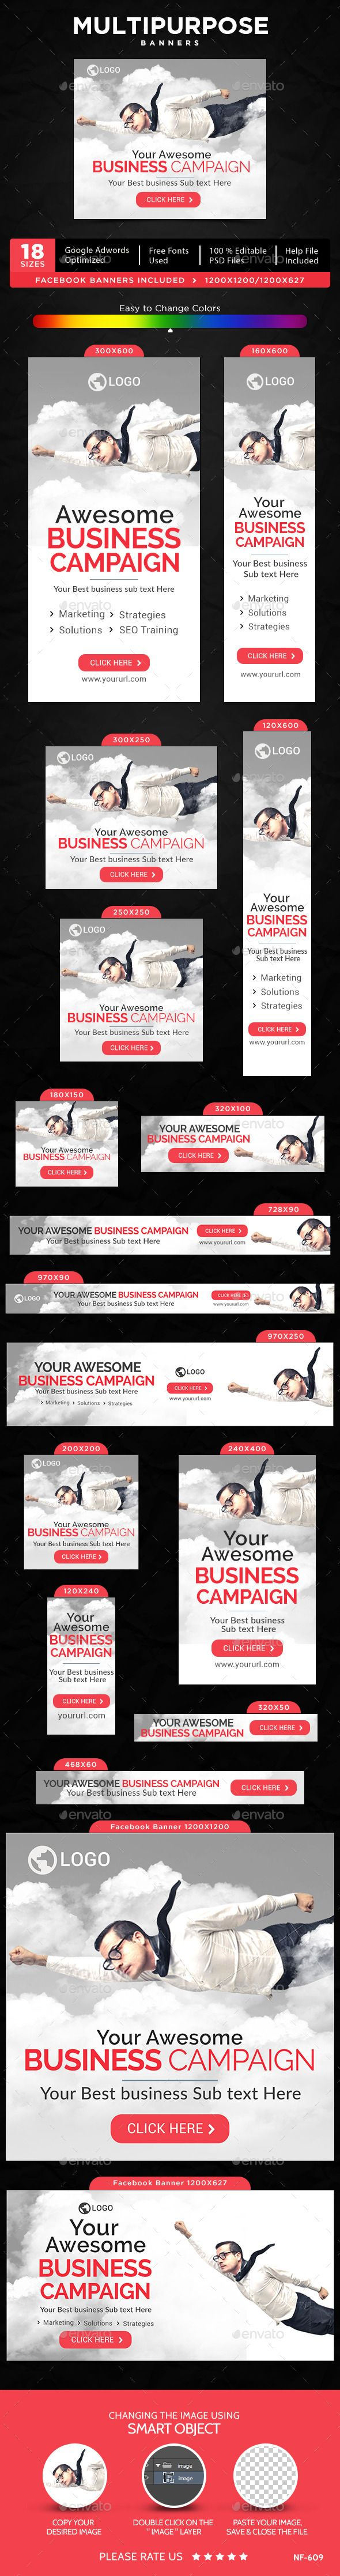 Multipurpose Banners Template #design #ads Download: http://graphicriver.net/item/multipurpose-banners/12723289?ref=ksioks